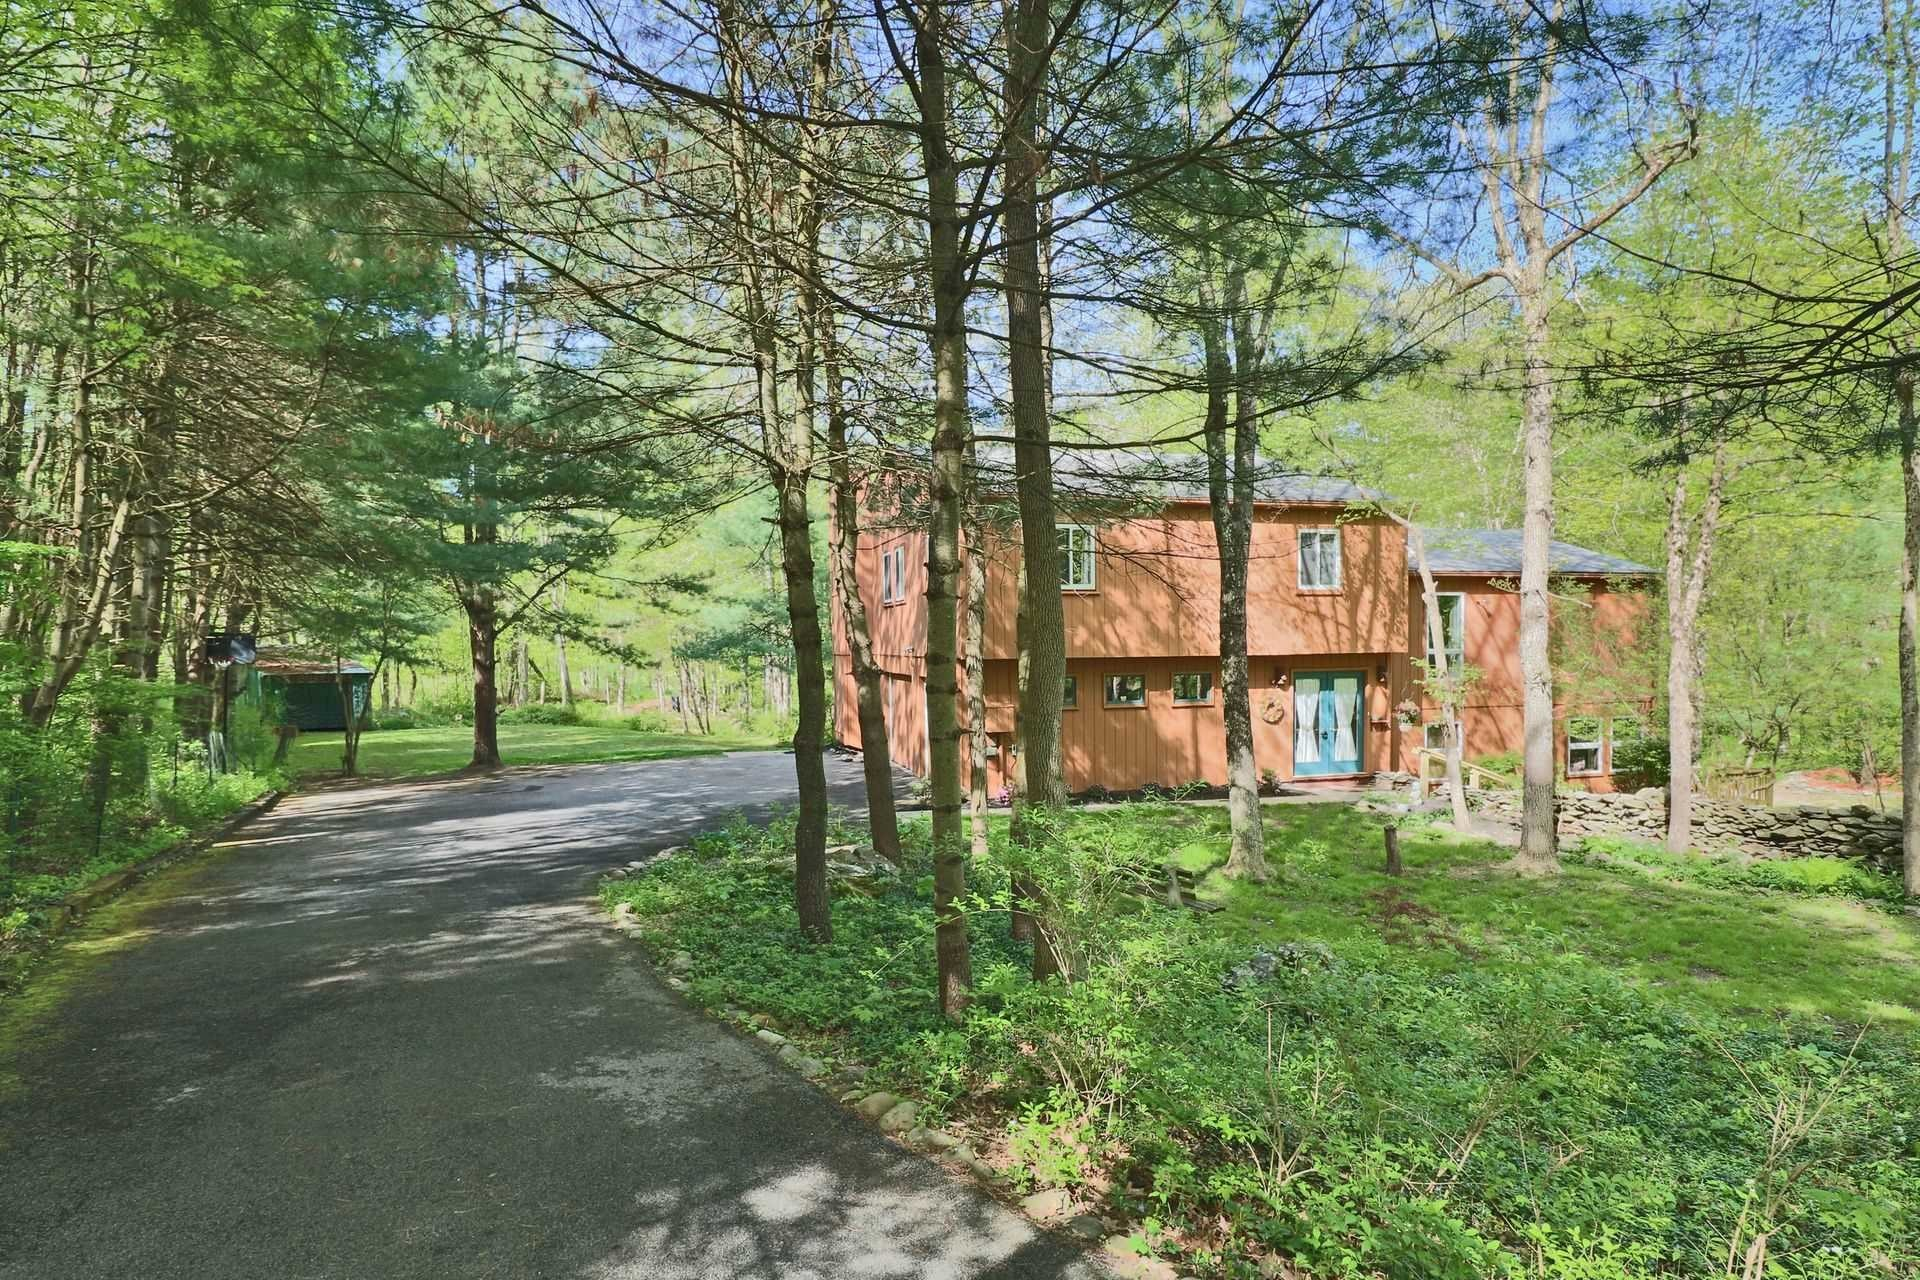 Single Family Home for Sale at 44 HALTER LANE 44 HALTER LANE Pleasant Valley, New York 12569 United States